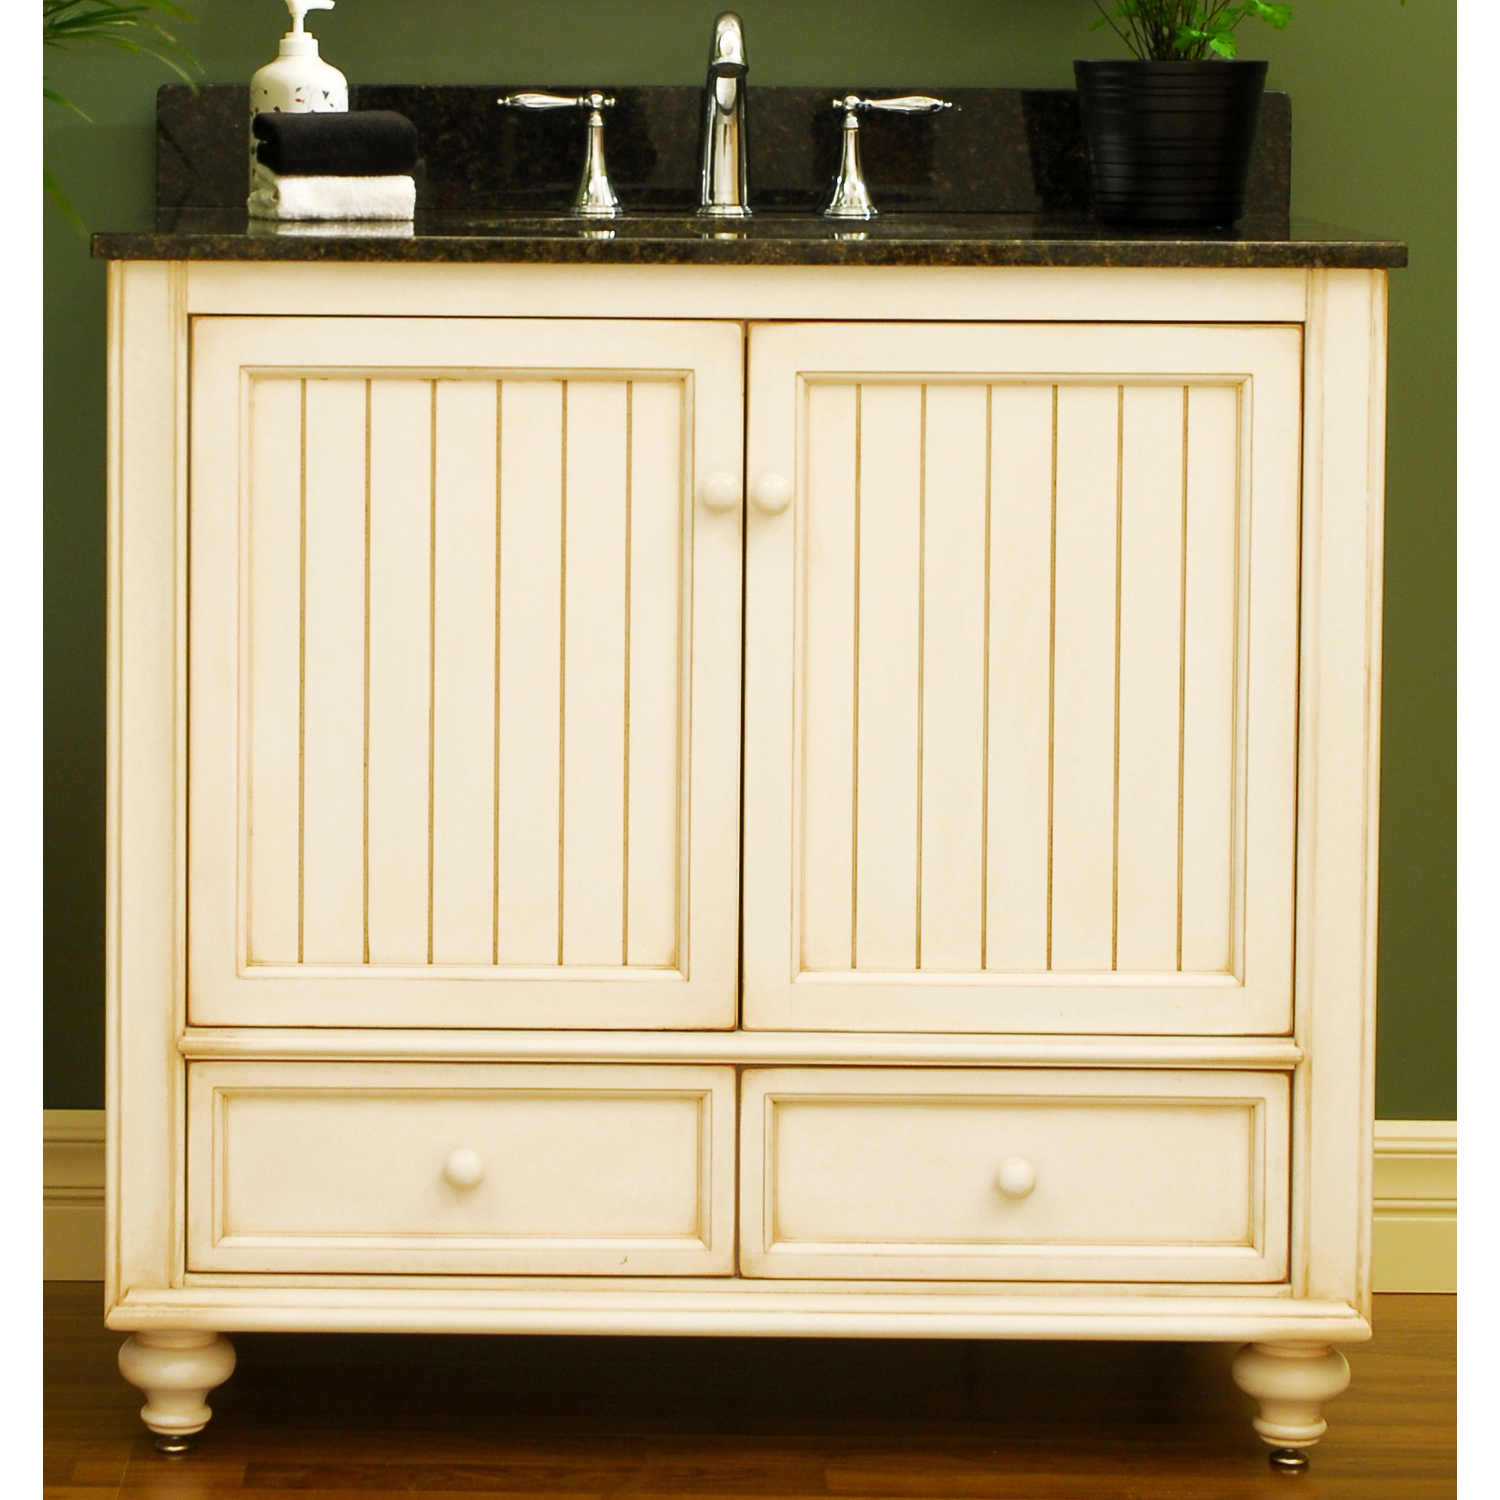 A Selection of White Bathroom Vanities by Sagehill Designs for a Relaxing Seaside Cottage Style